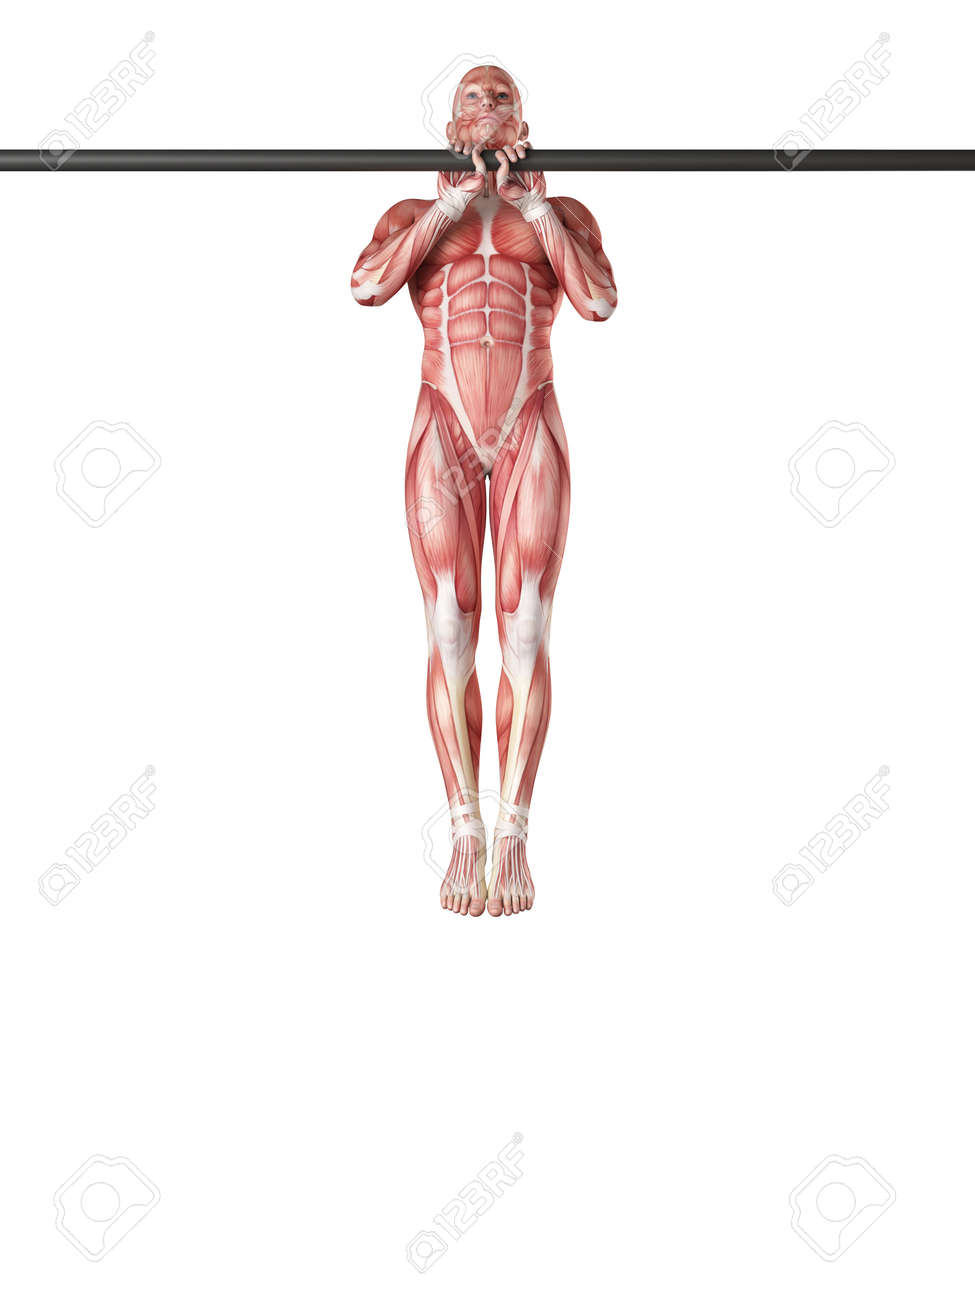 Exercise Illustration Close Grip Pull Ups Stock Photo Picture And